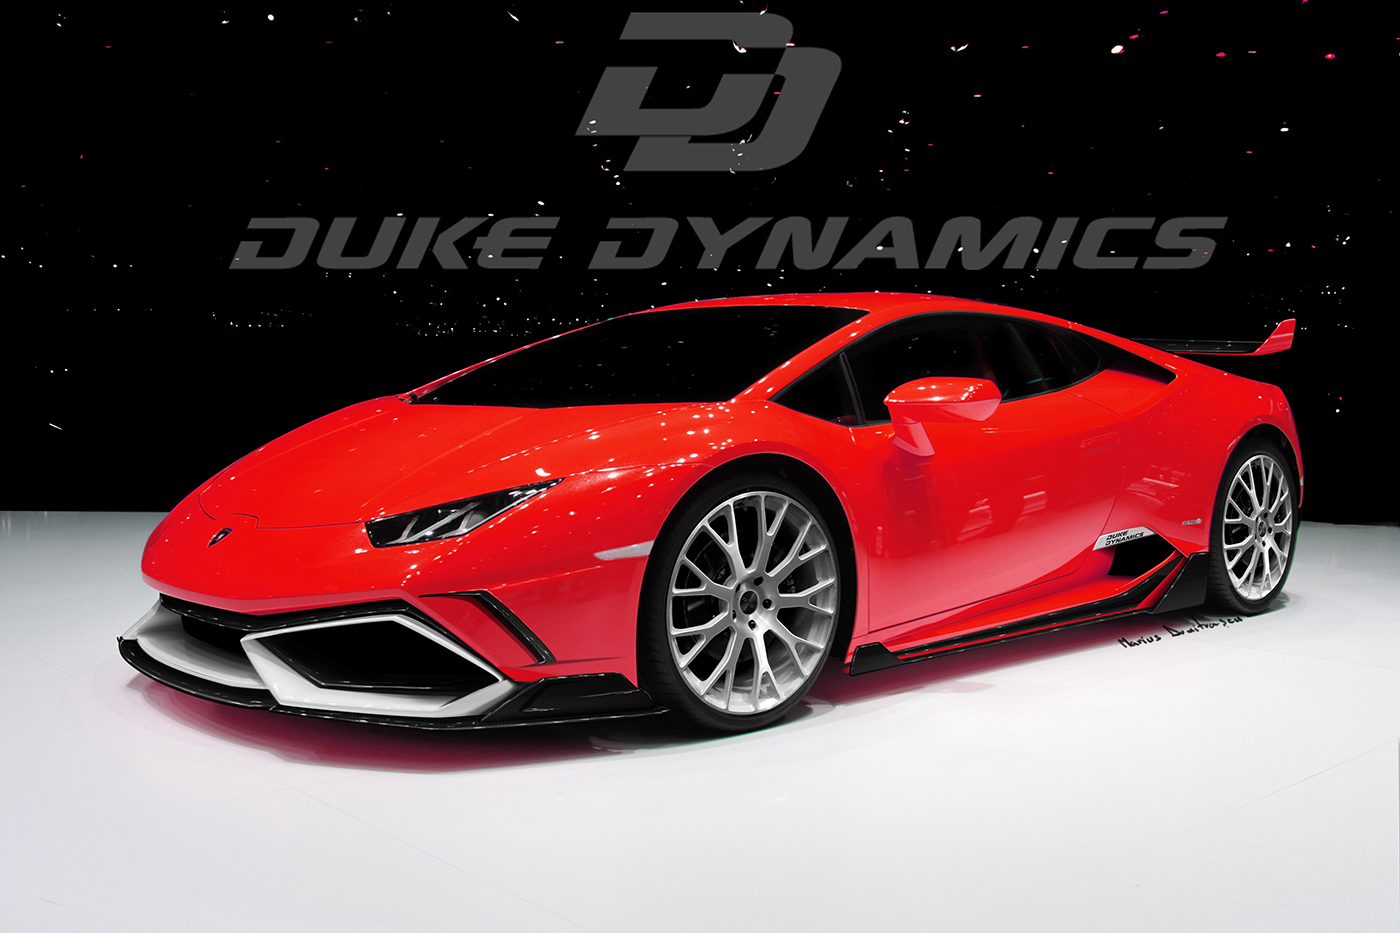 Duke Dynamics Comes Up With A Second Version Of The